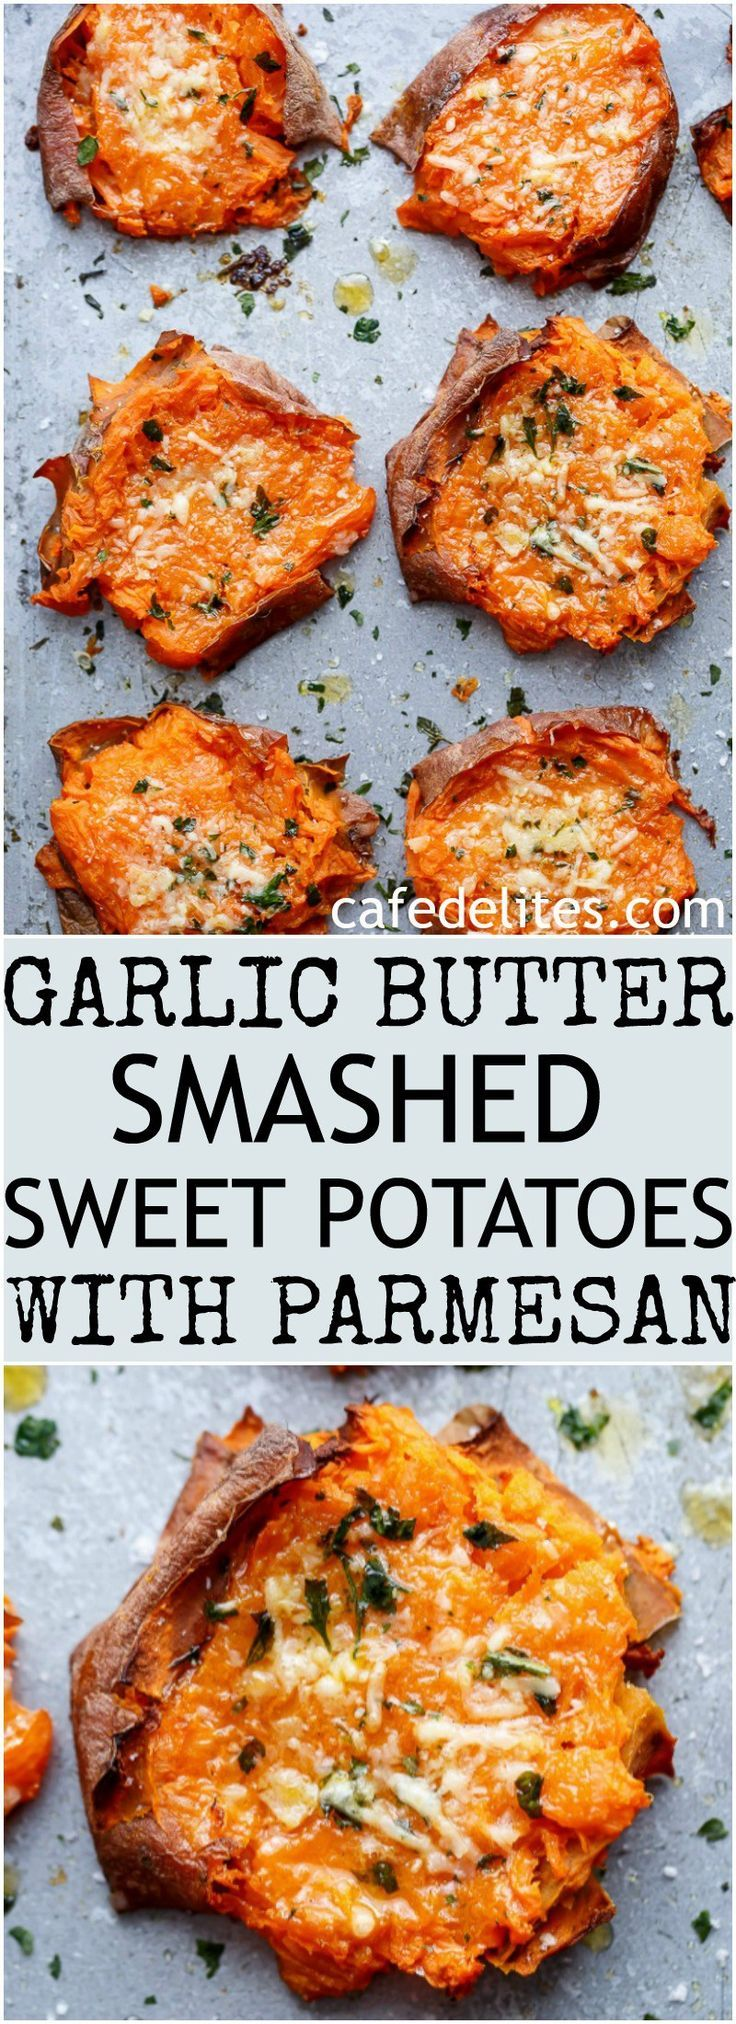 Garlic Butter Smashed Sweet Potatoes With Parmesan Cheese are crispy and buttery on the outside, while soft and sweet on the inside, making way for one of the best ways to eat a sweet potato!